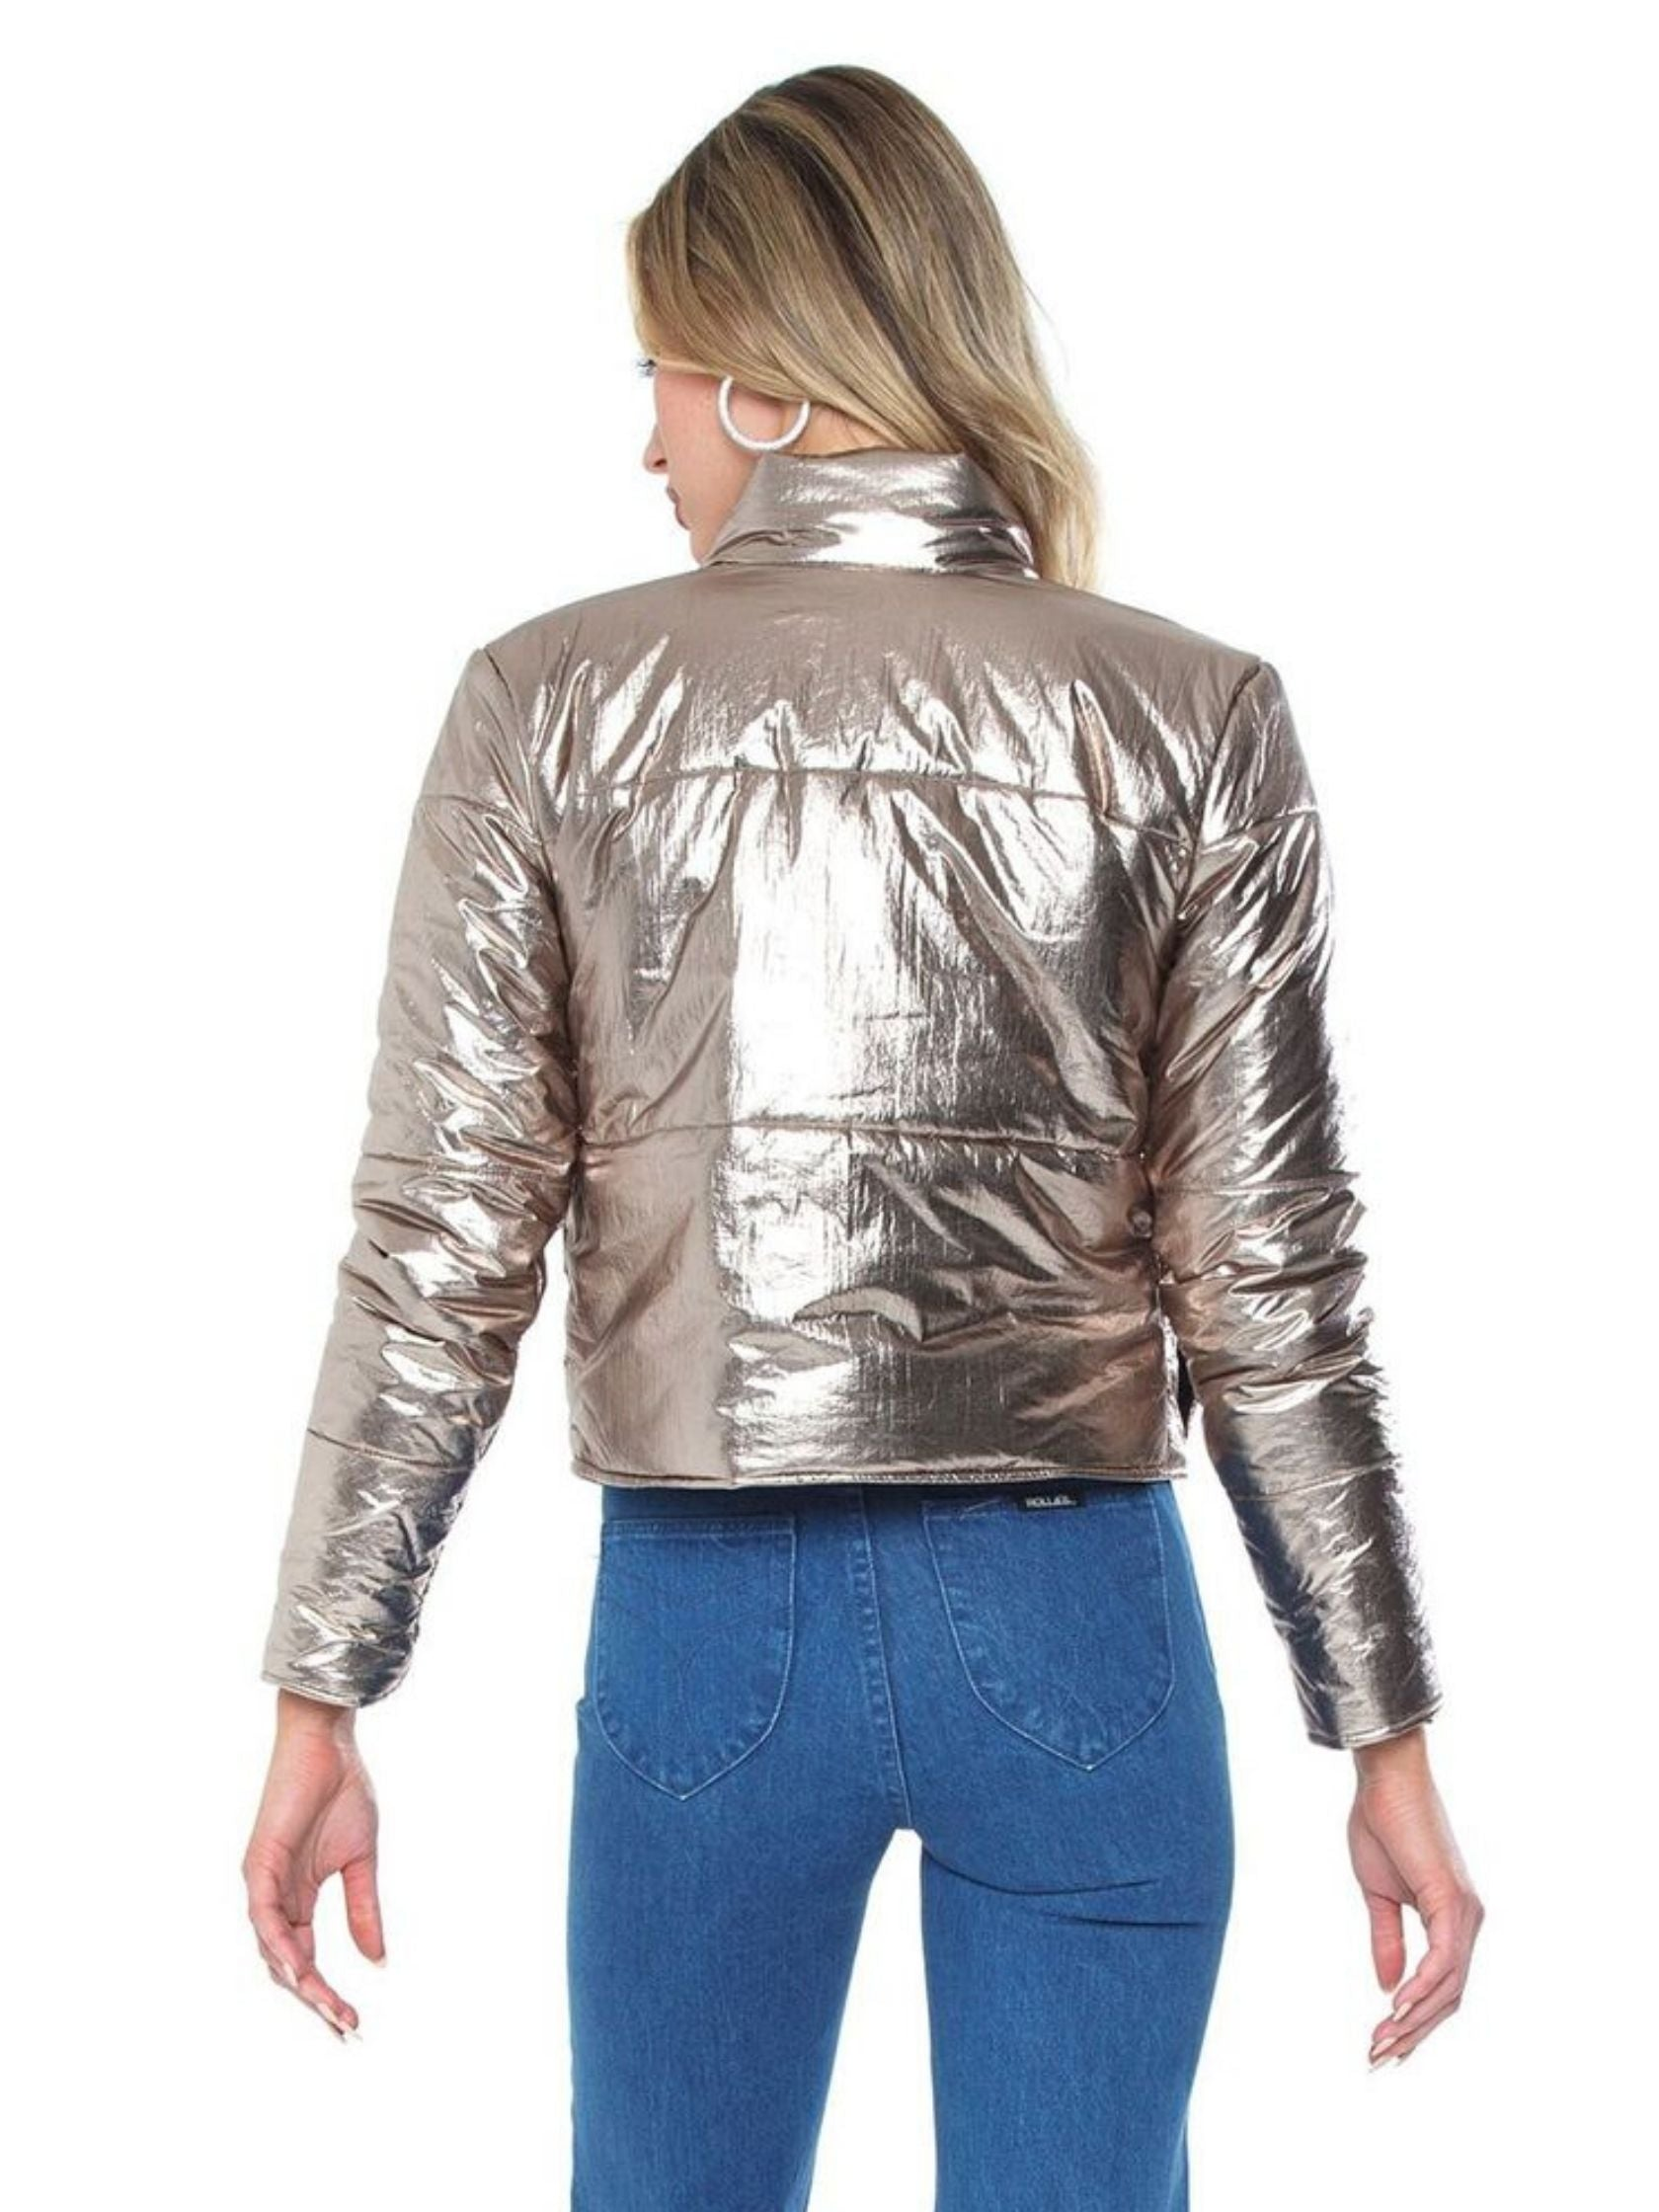 Women outfit in a jacket rental from DAVID LERNER called Bella Metallic Crop Puffer